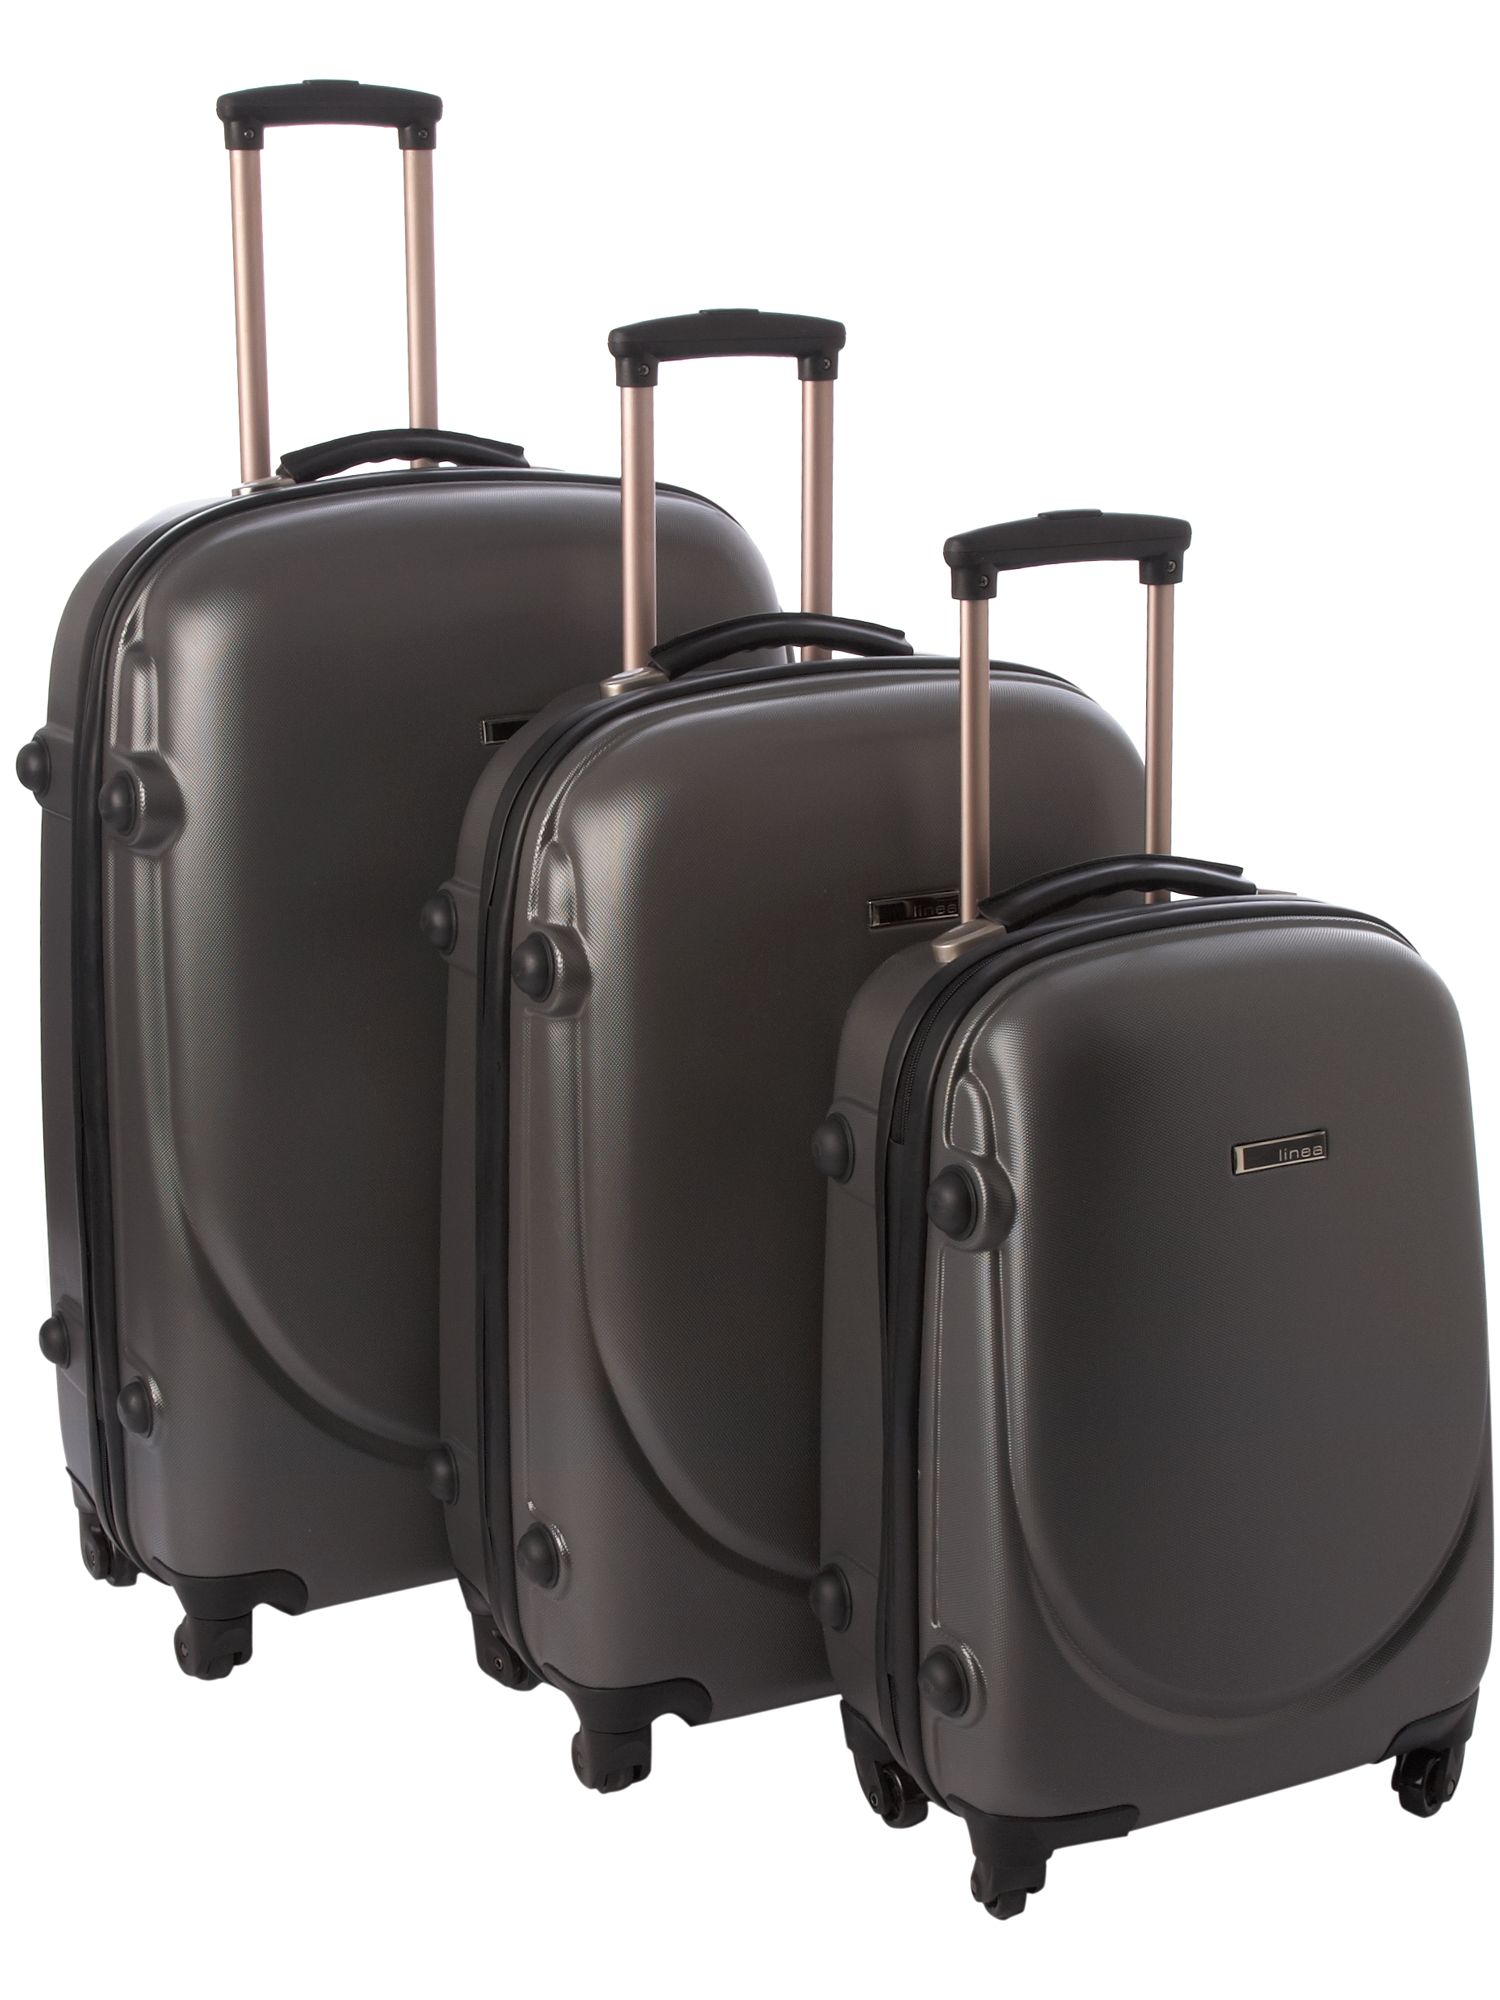 Linea Boston 50cm spinner trolley case